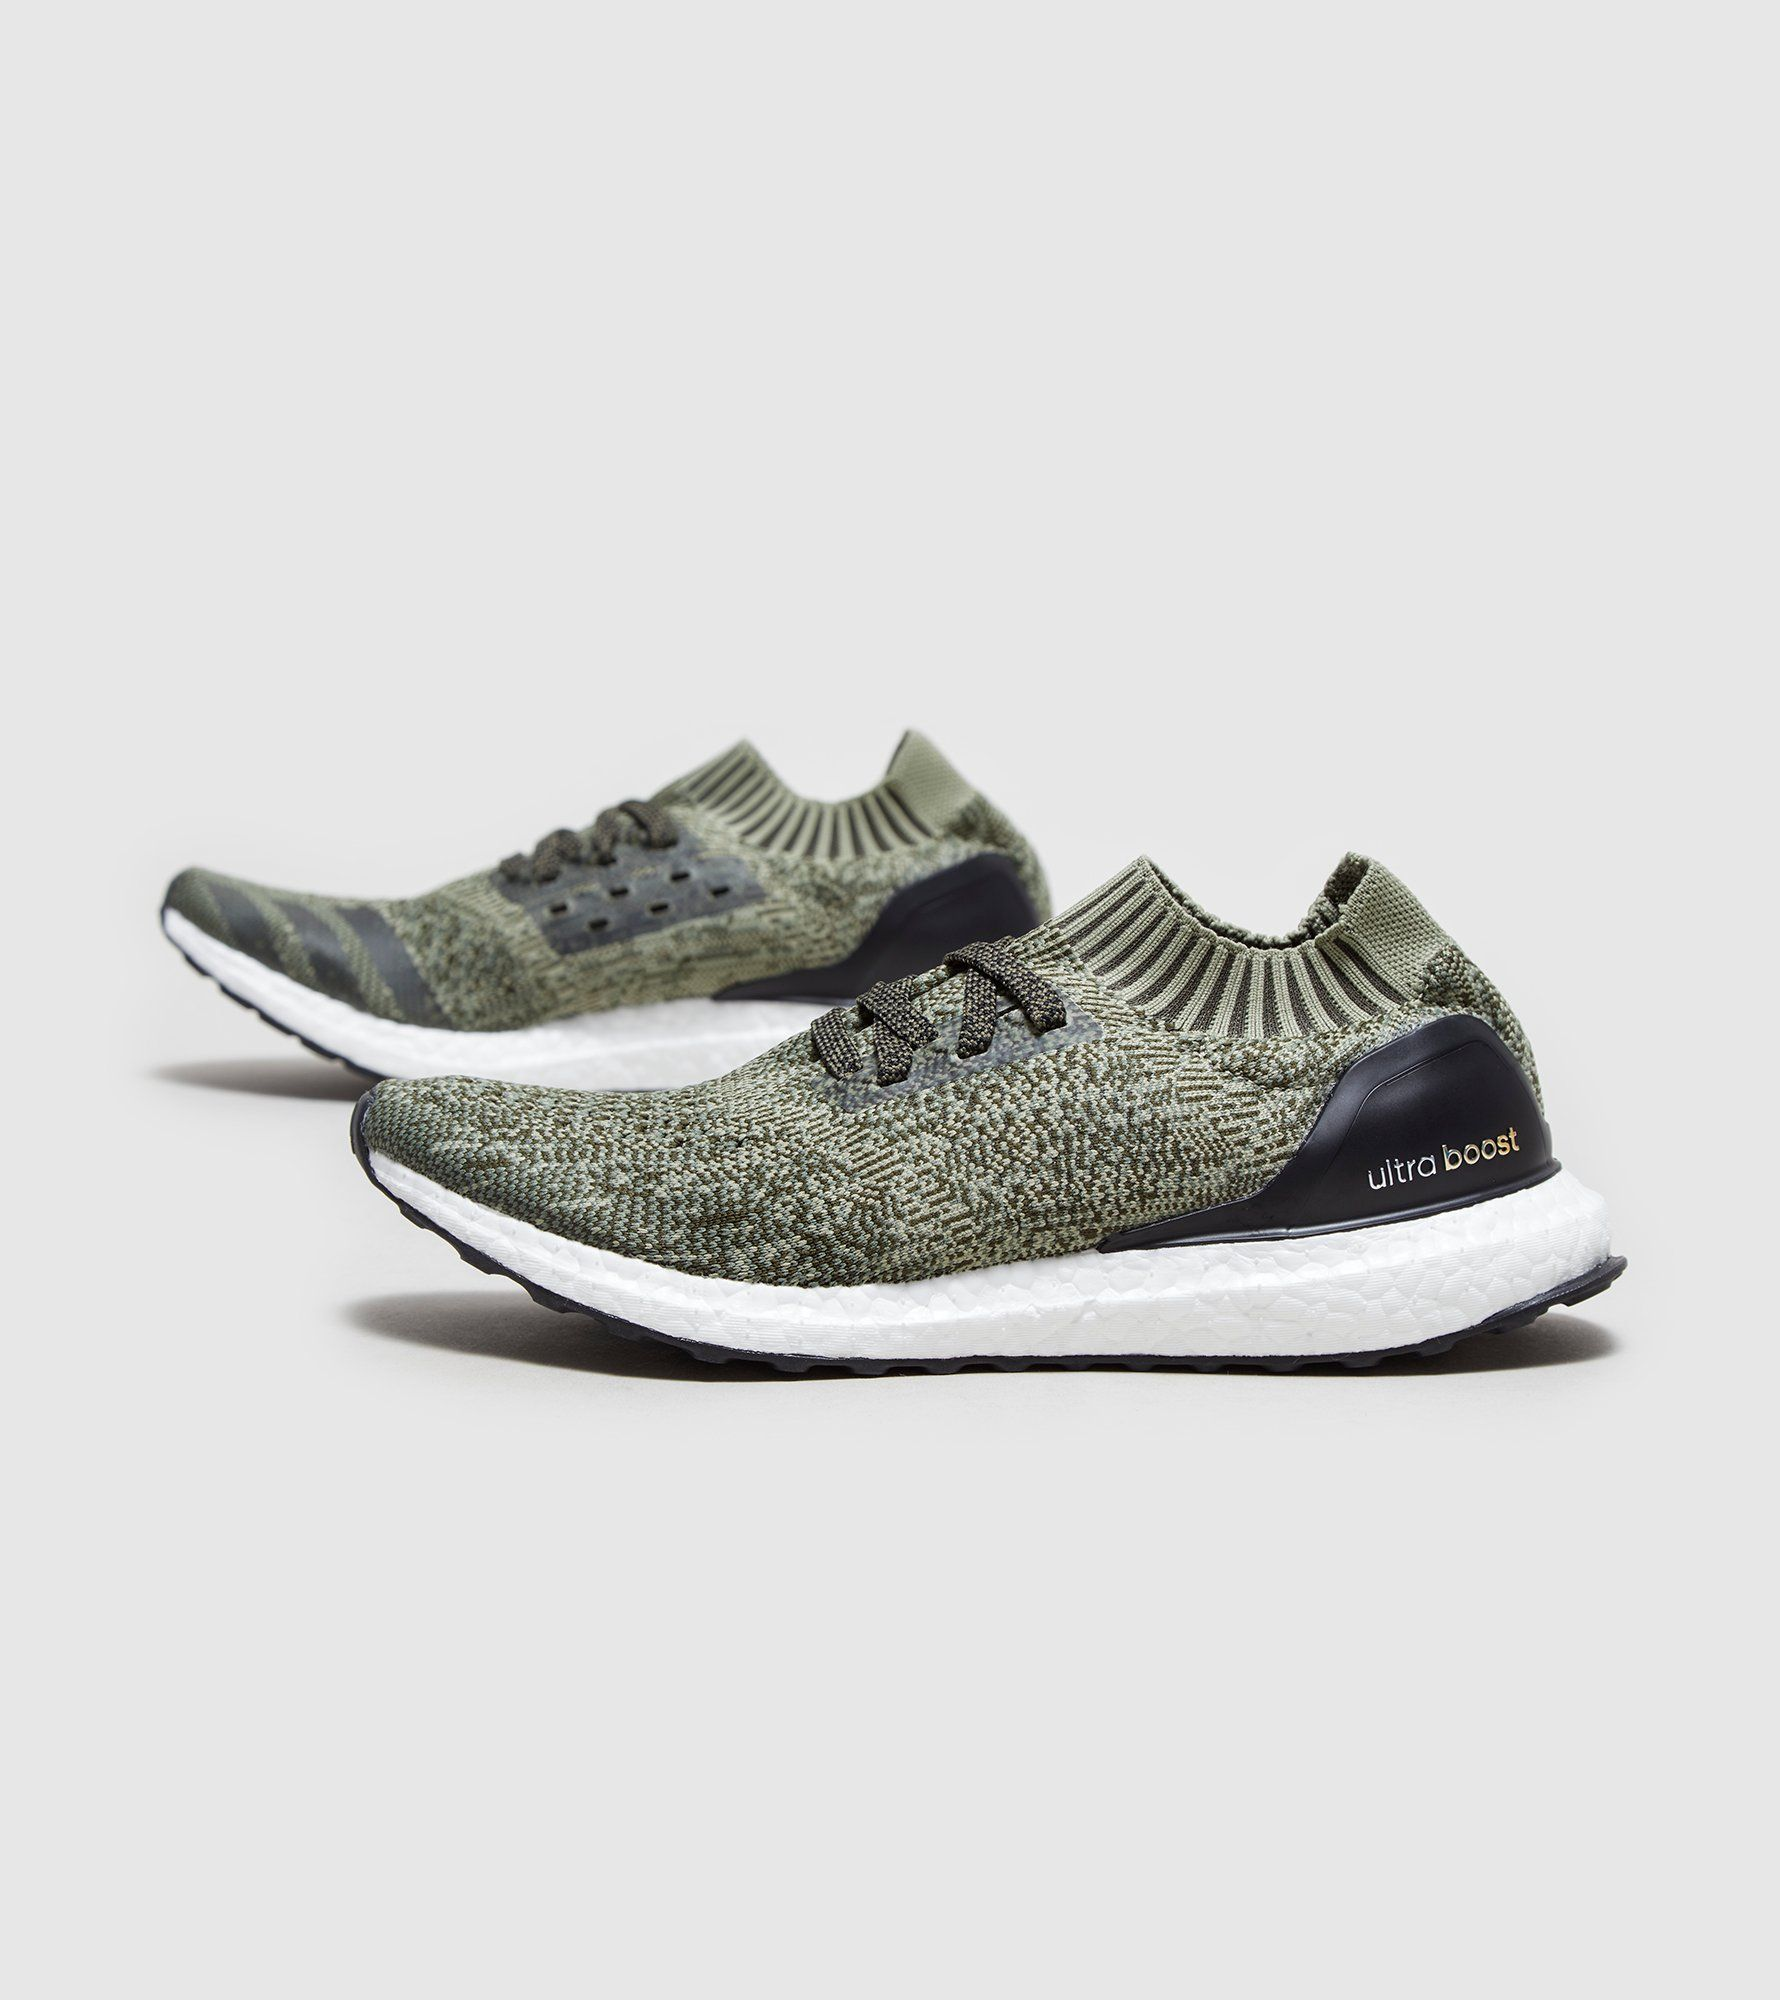 adidas ado day one ultra boost size guide